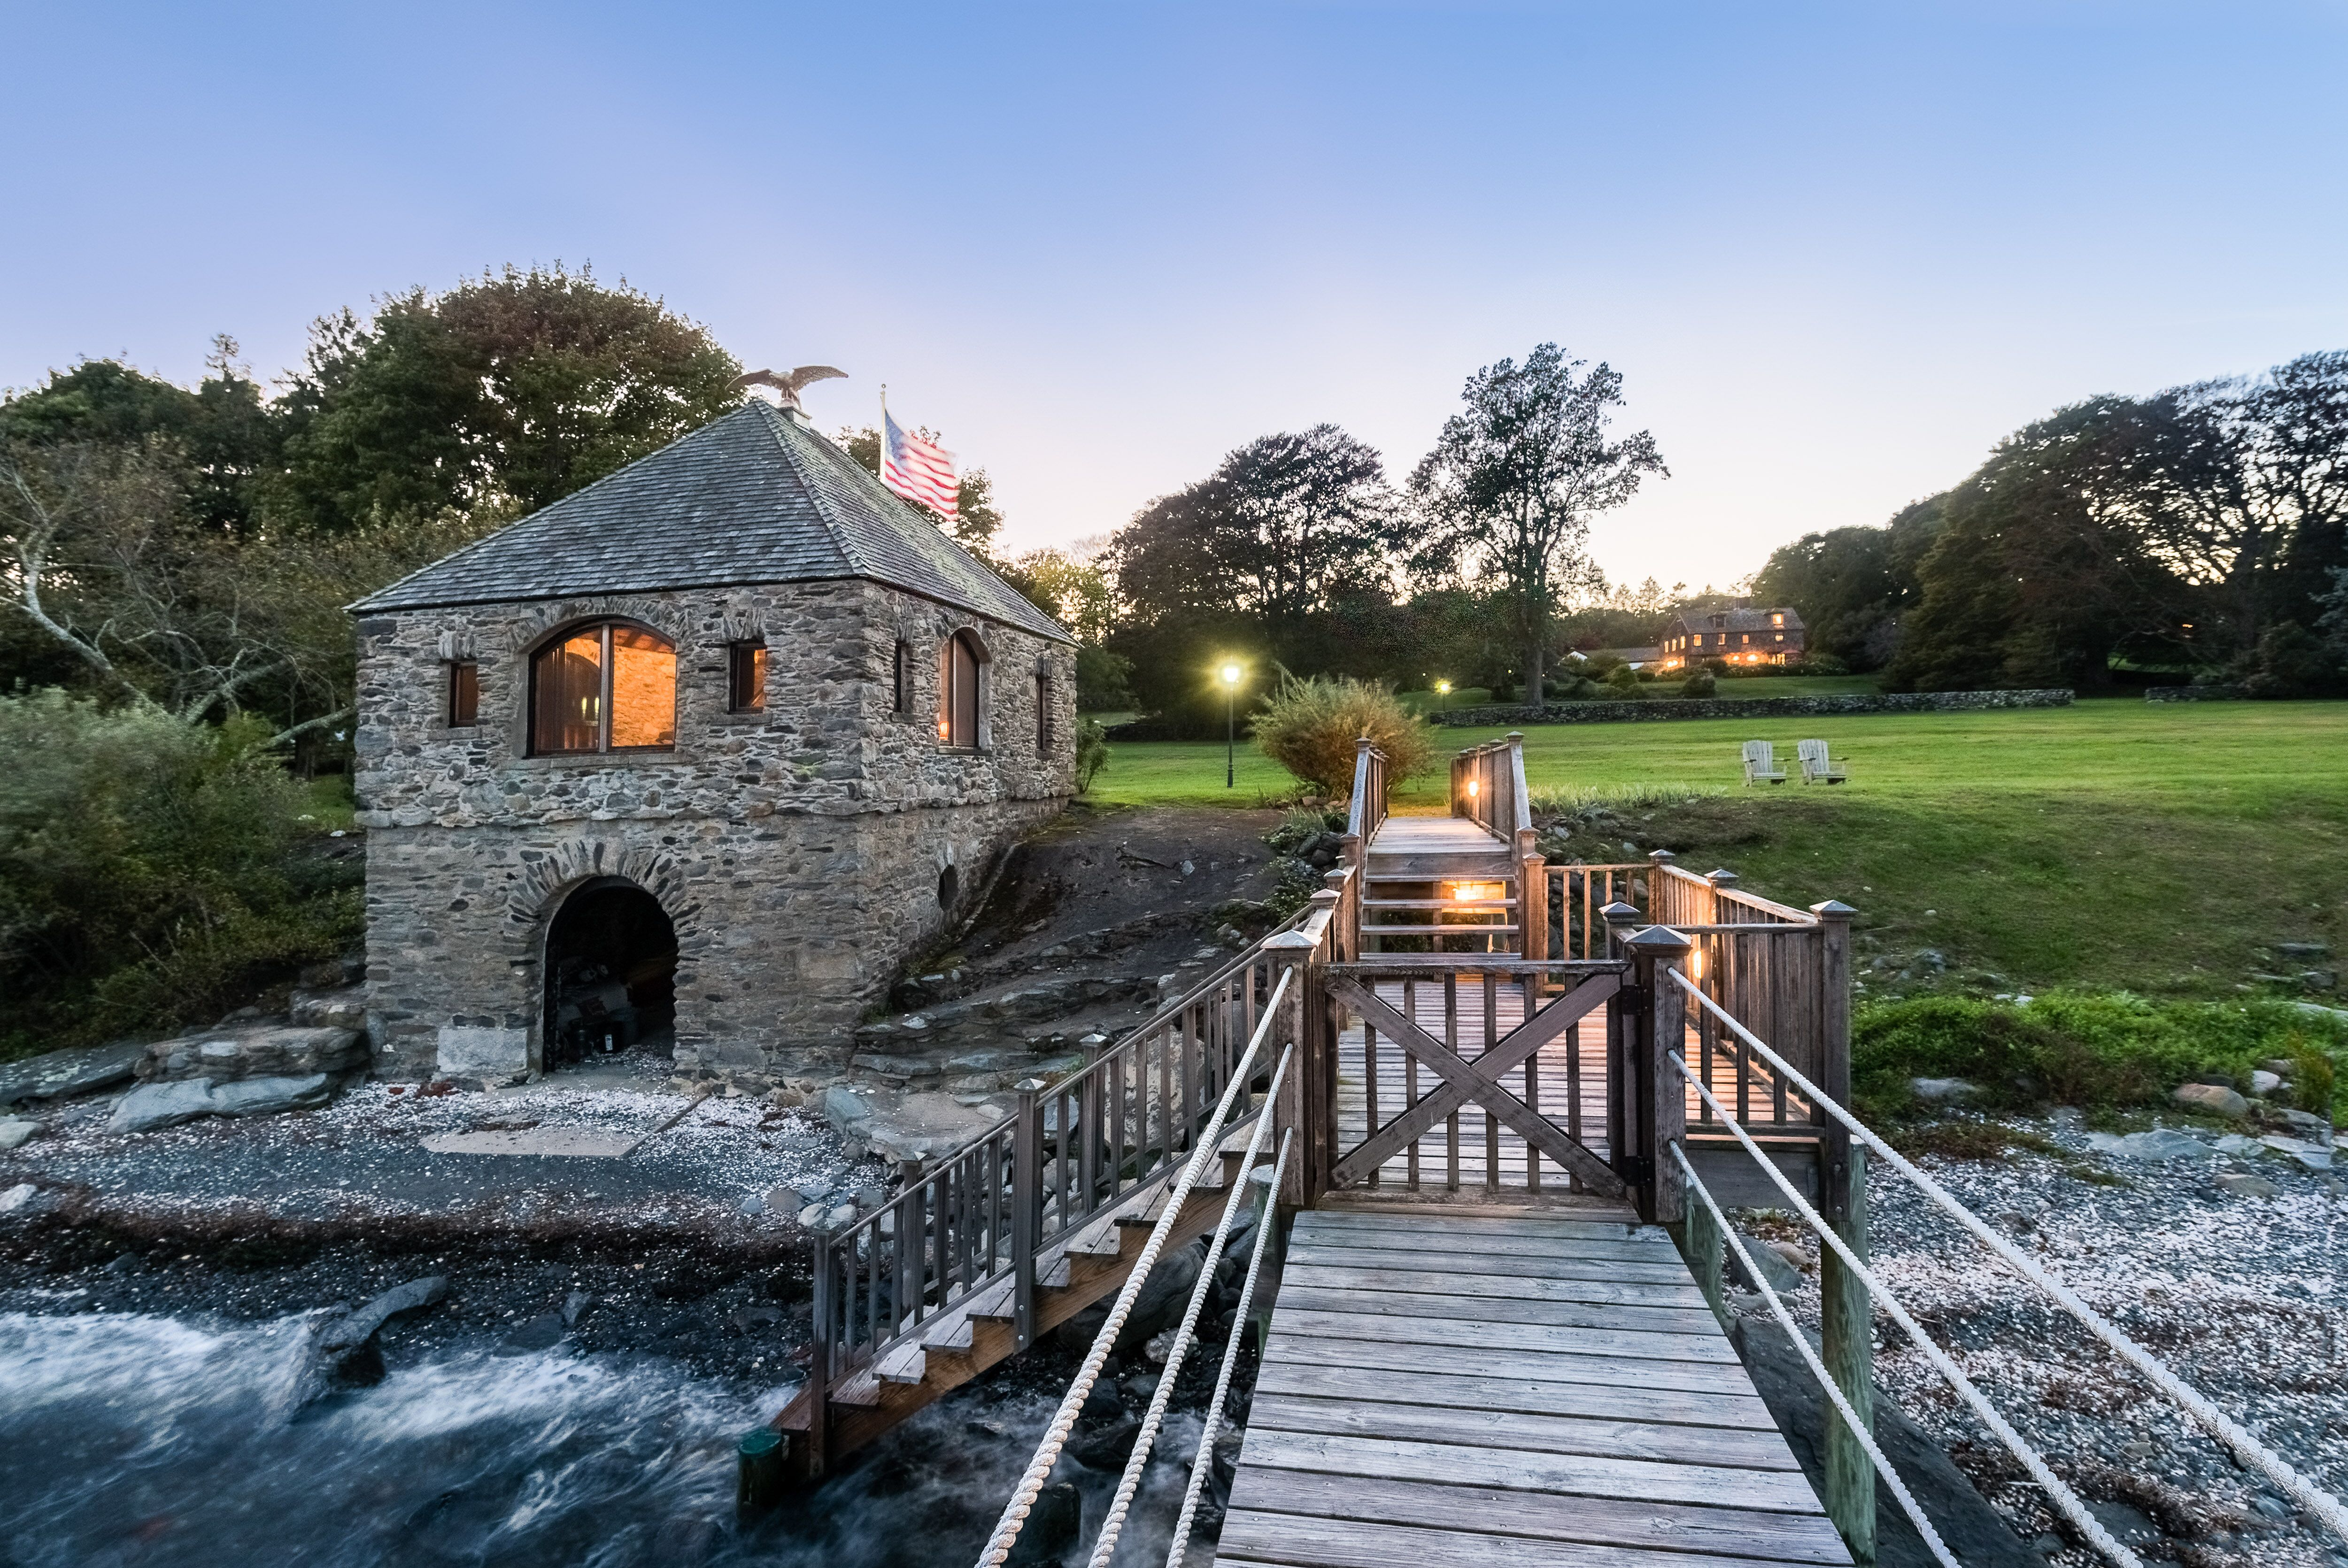 THE CAJACET FARM waterfront features a one-room stone boathouse and a dock. / COURTESY MOTT & CHACE SOTHEBY'S INTERNATIONAL REALTY